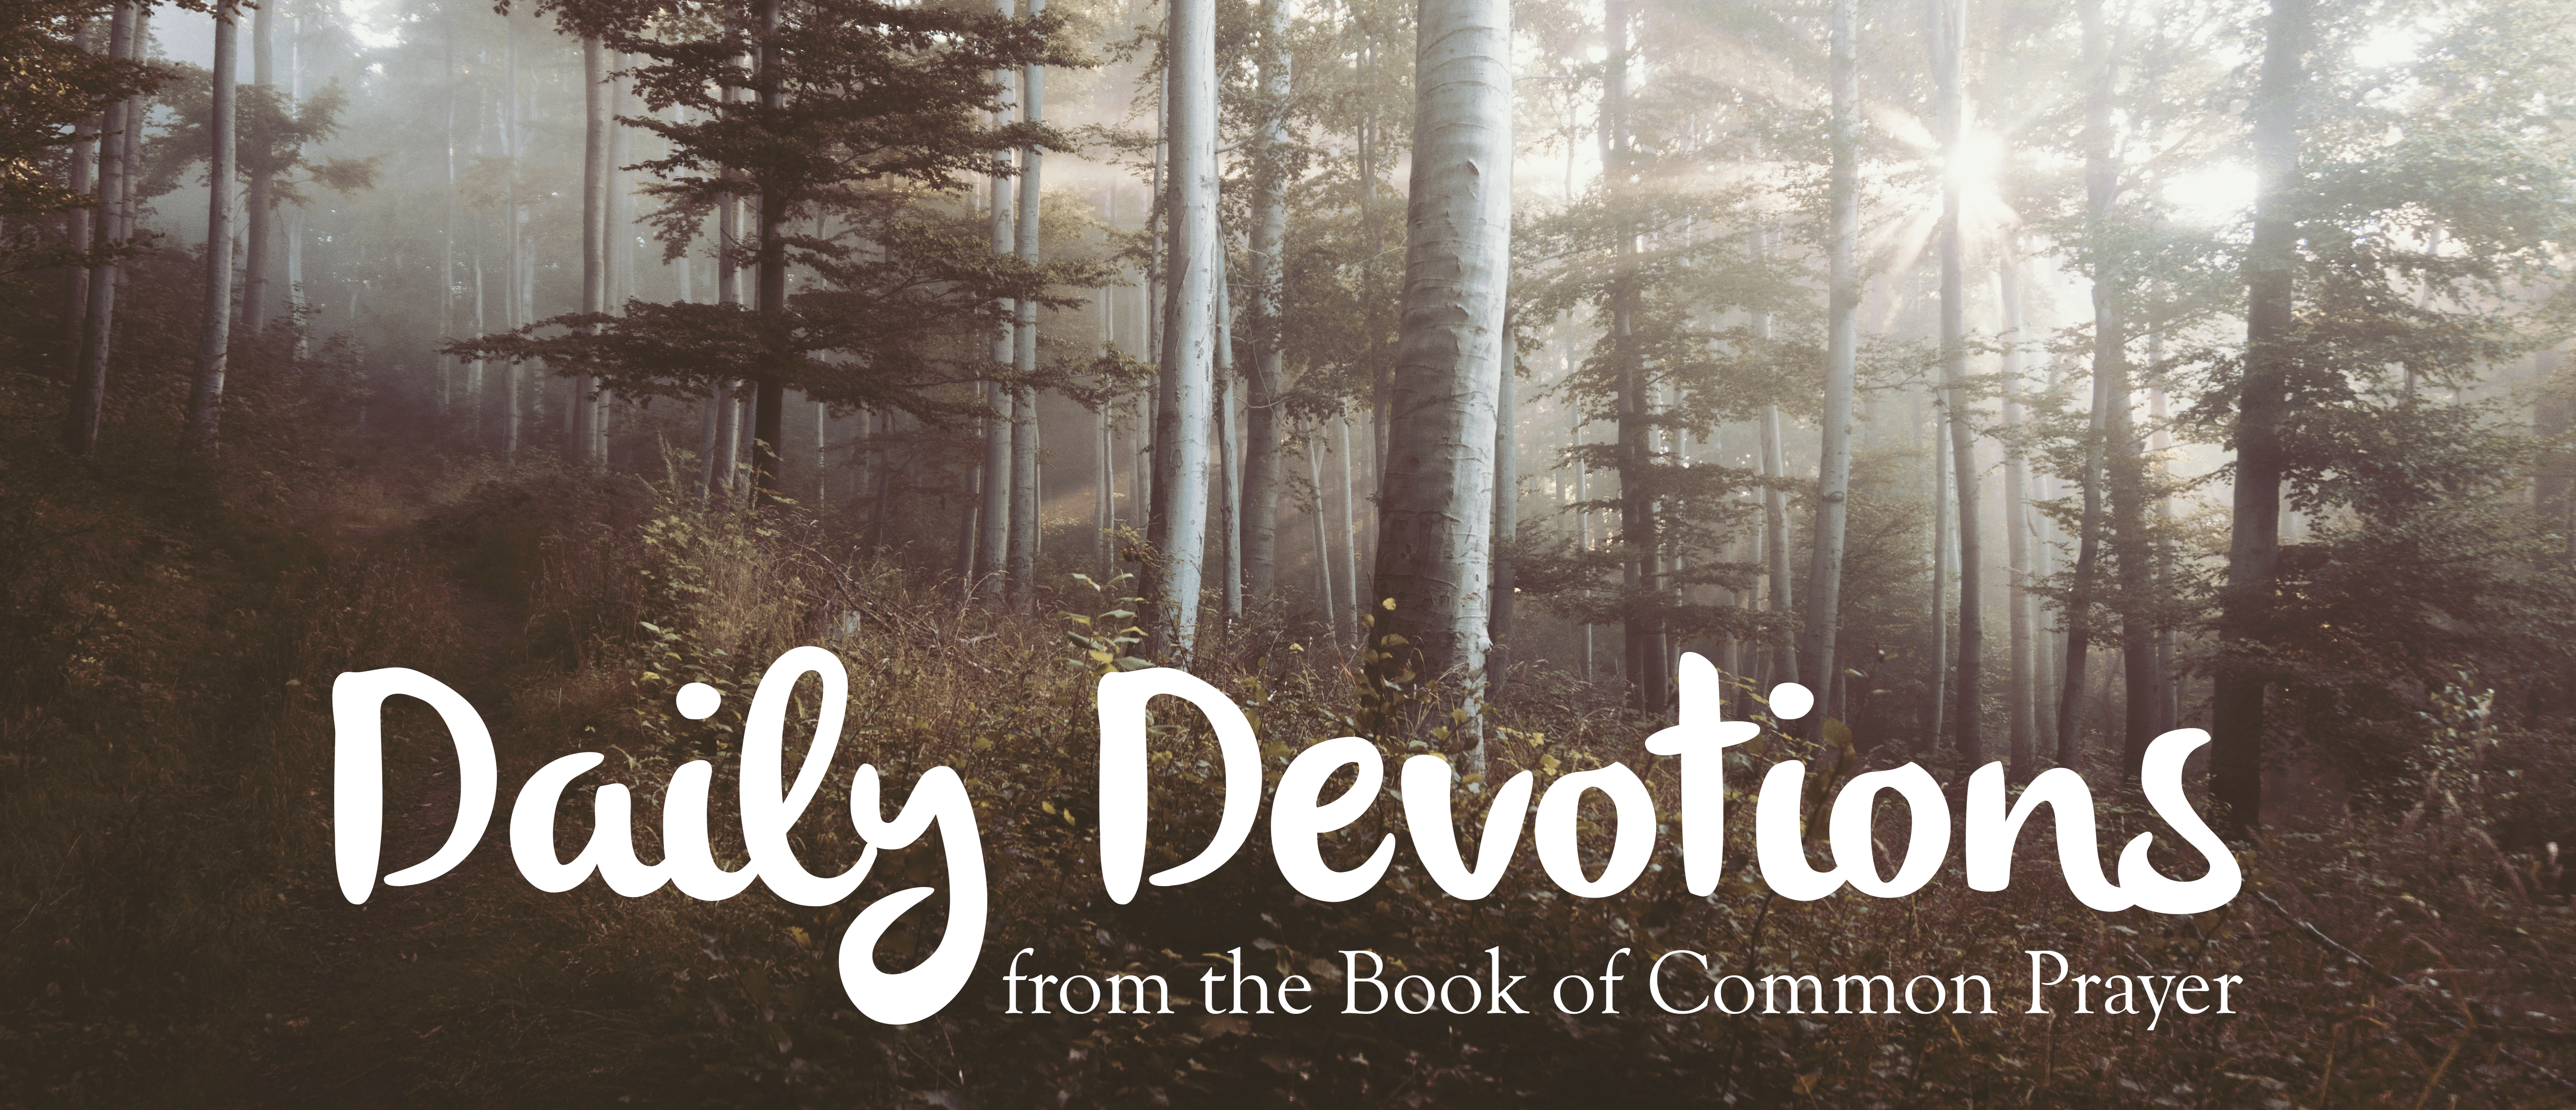 church of the highlands daily devotional